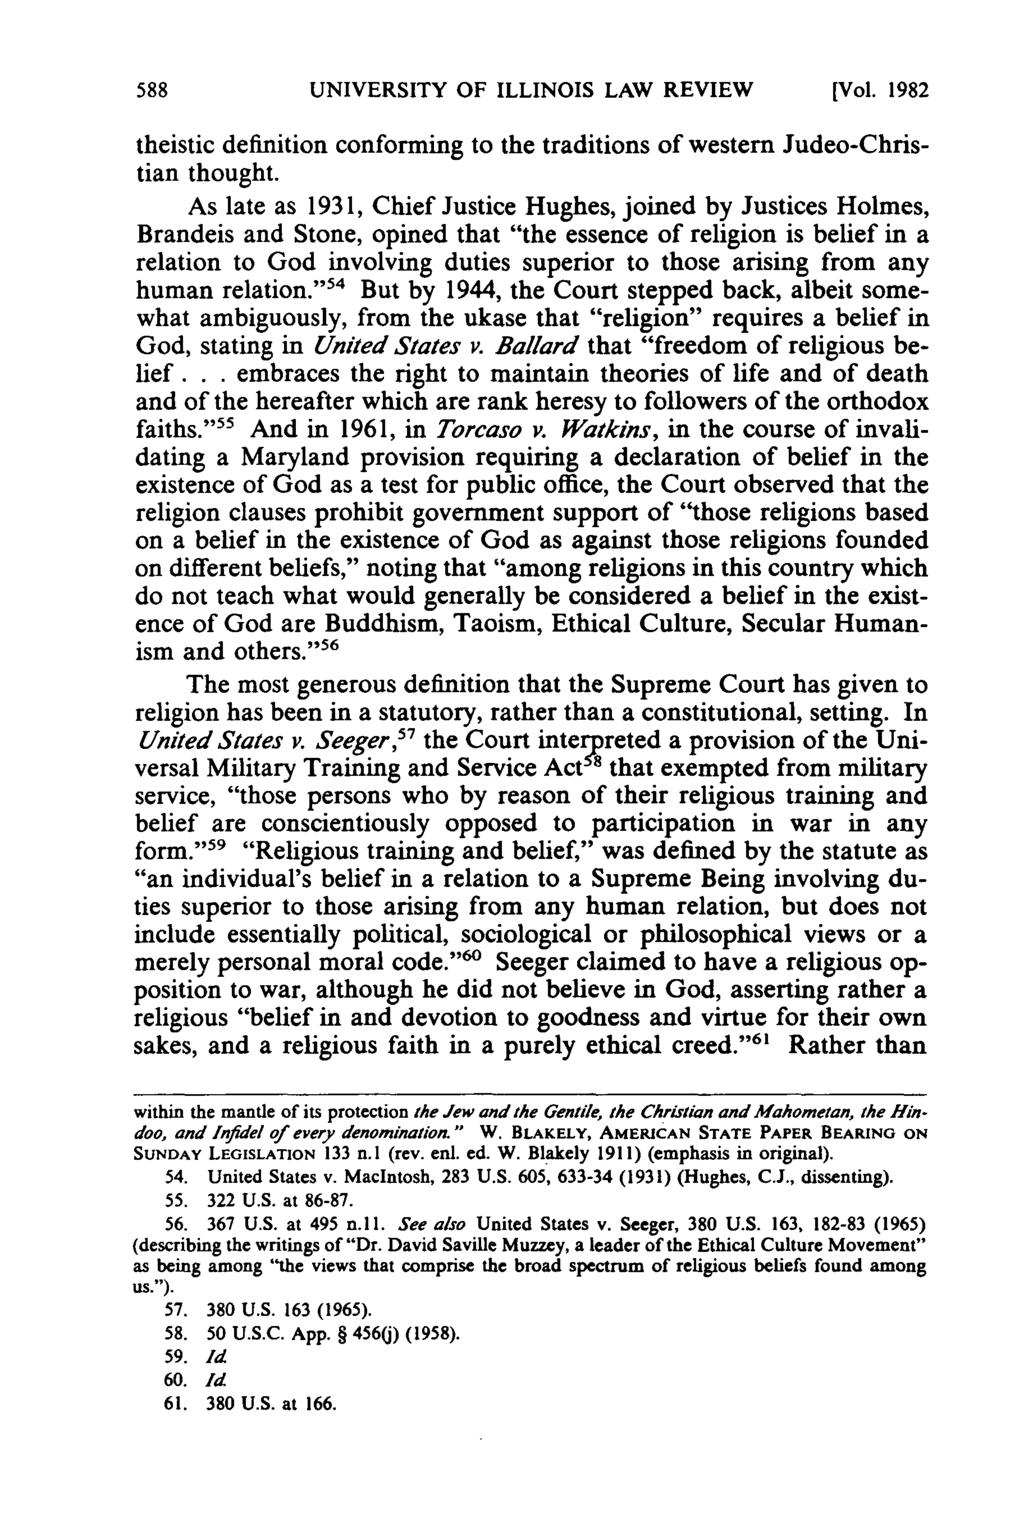 UNIVERSITY OF ILLINOIS LAW REVIEW [Vol. 1982 theistic definition conforming to the traditions of western Judeo-Christian thought.